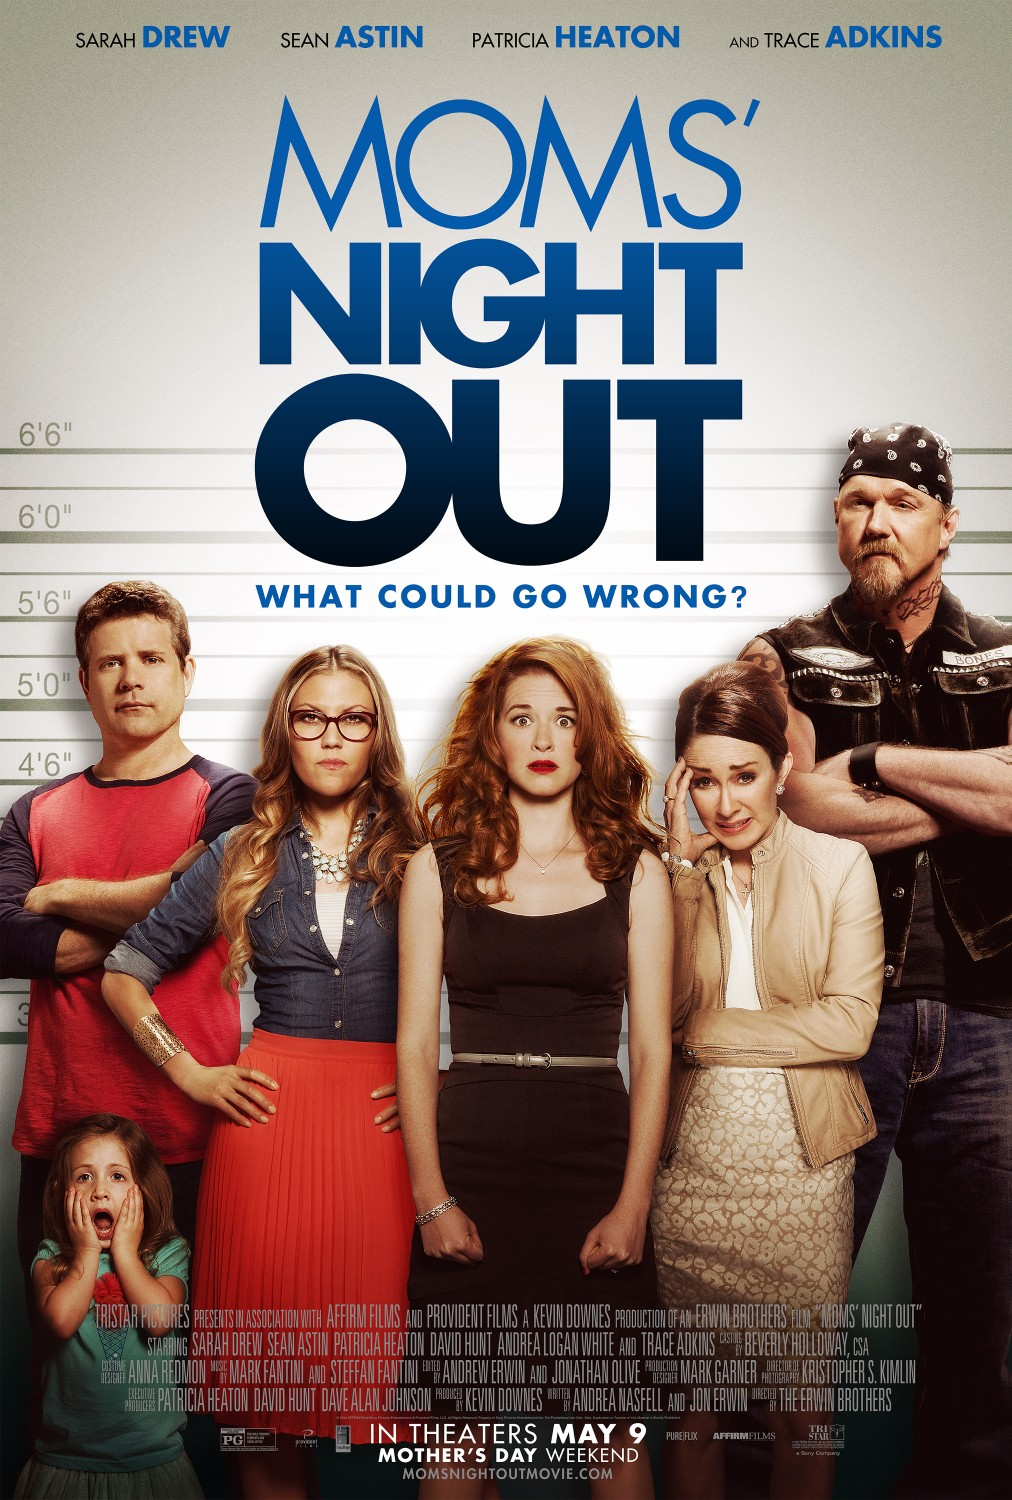 Trailer: Moms' Night Out